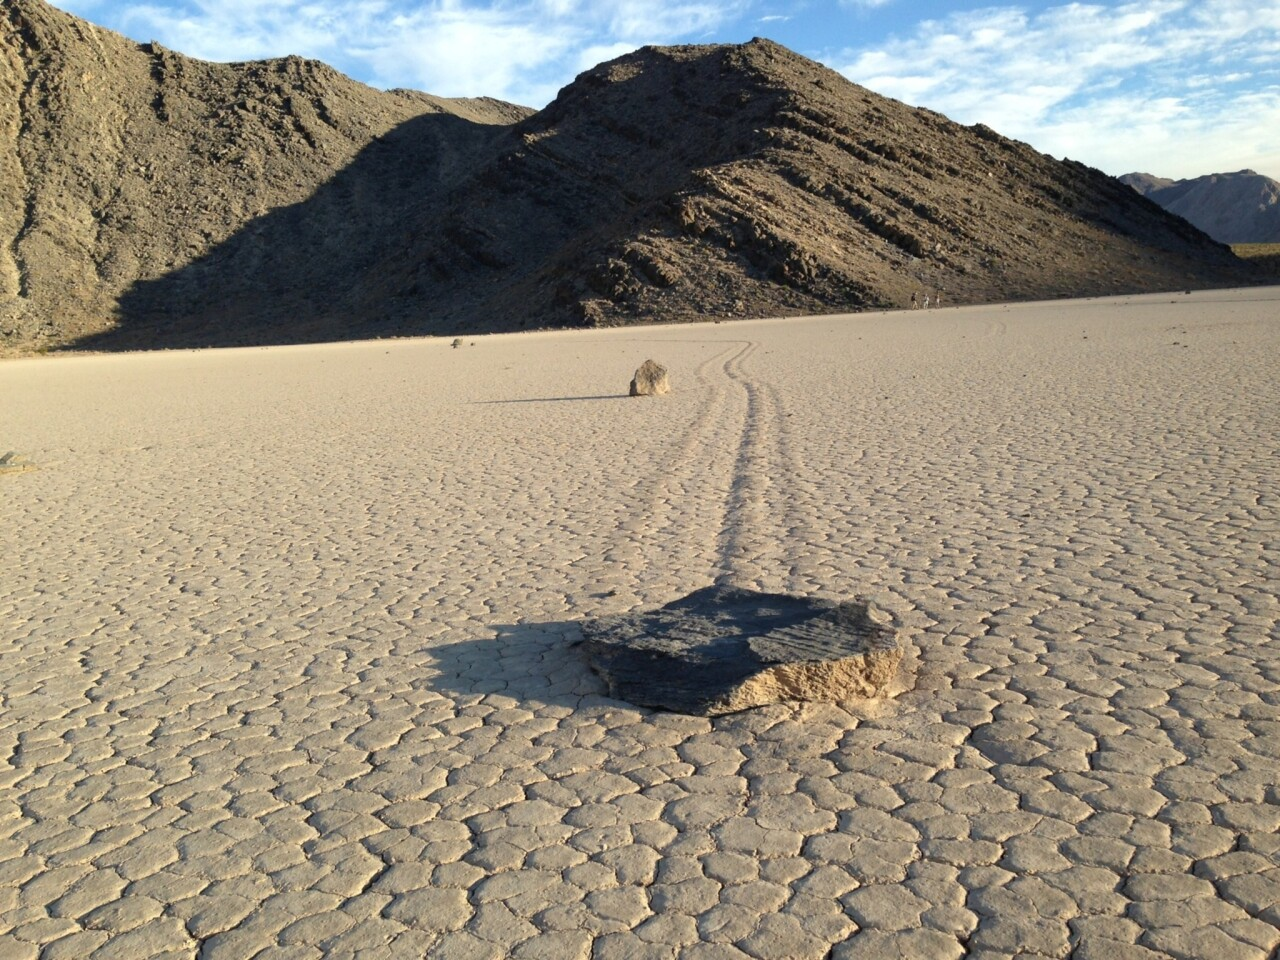 Newly published findings resolve the mystery of the moving rocks like this one that have left trails on the Racetrack playa in Death Valley National Park.